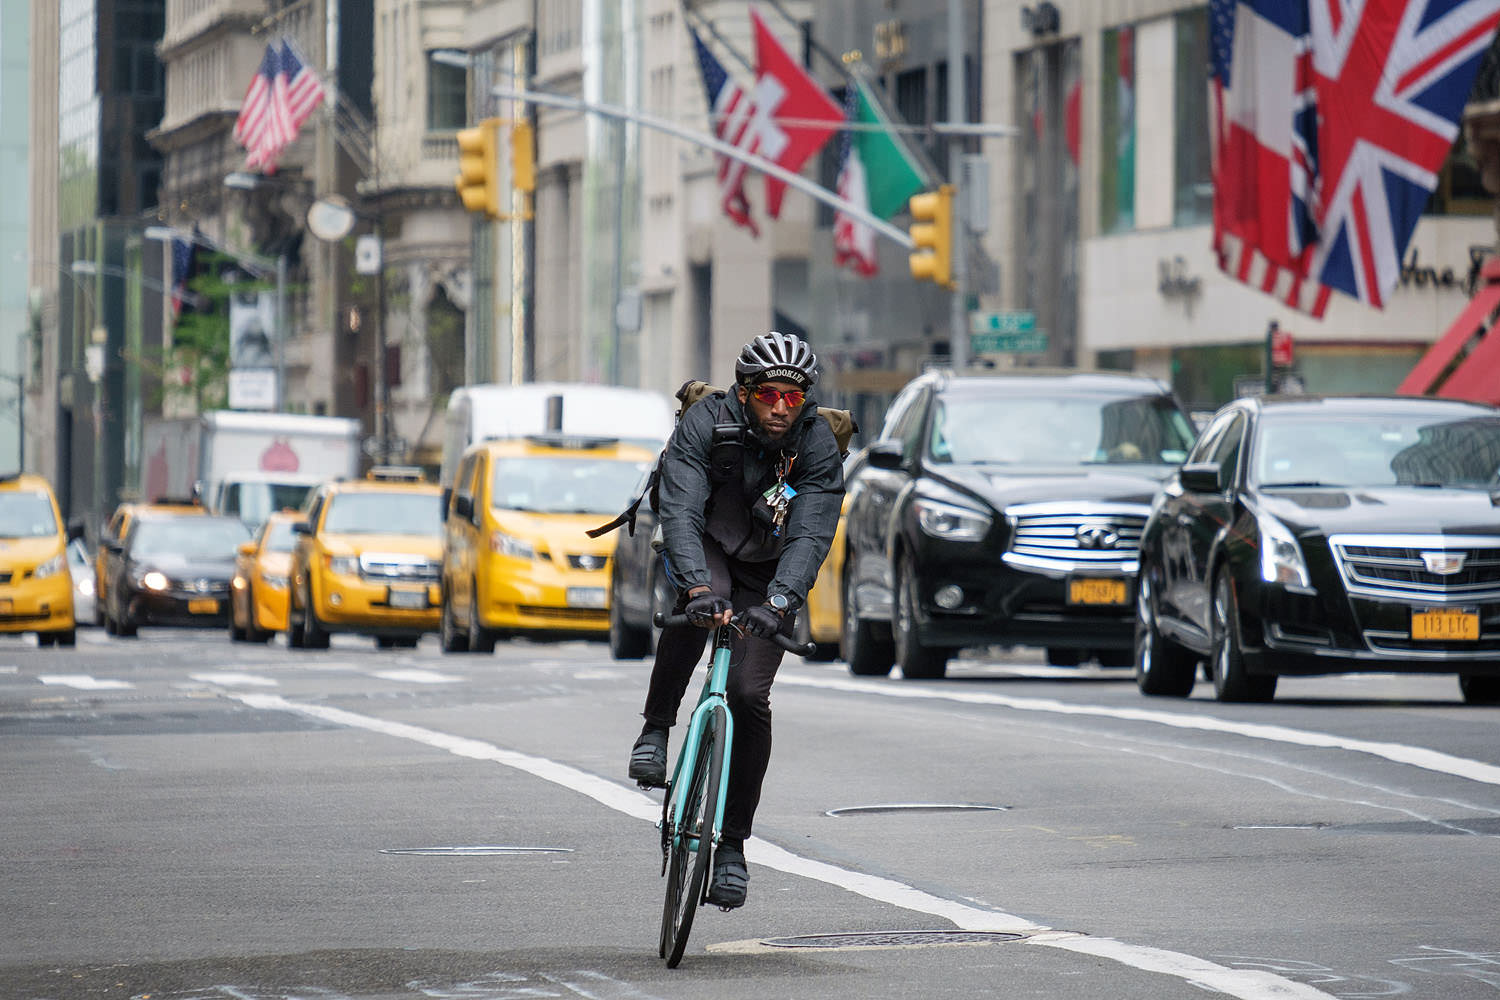 Bicyclist on Fifth Avenue